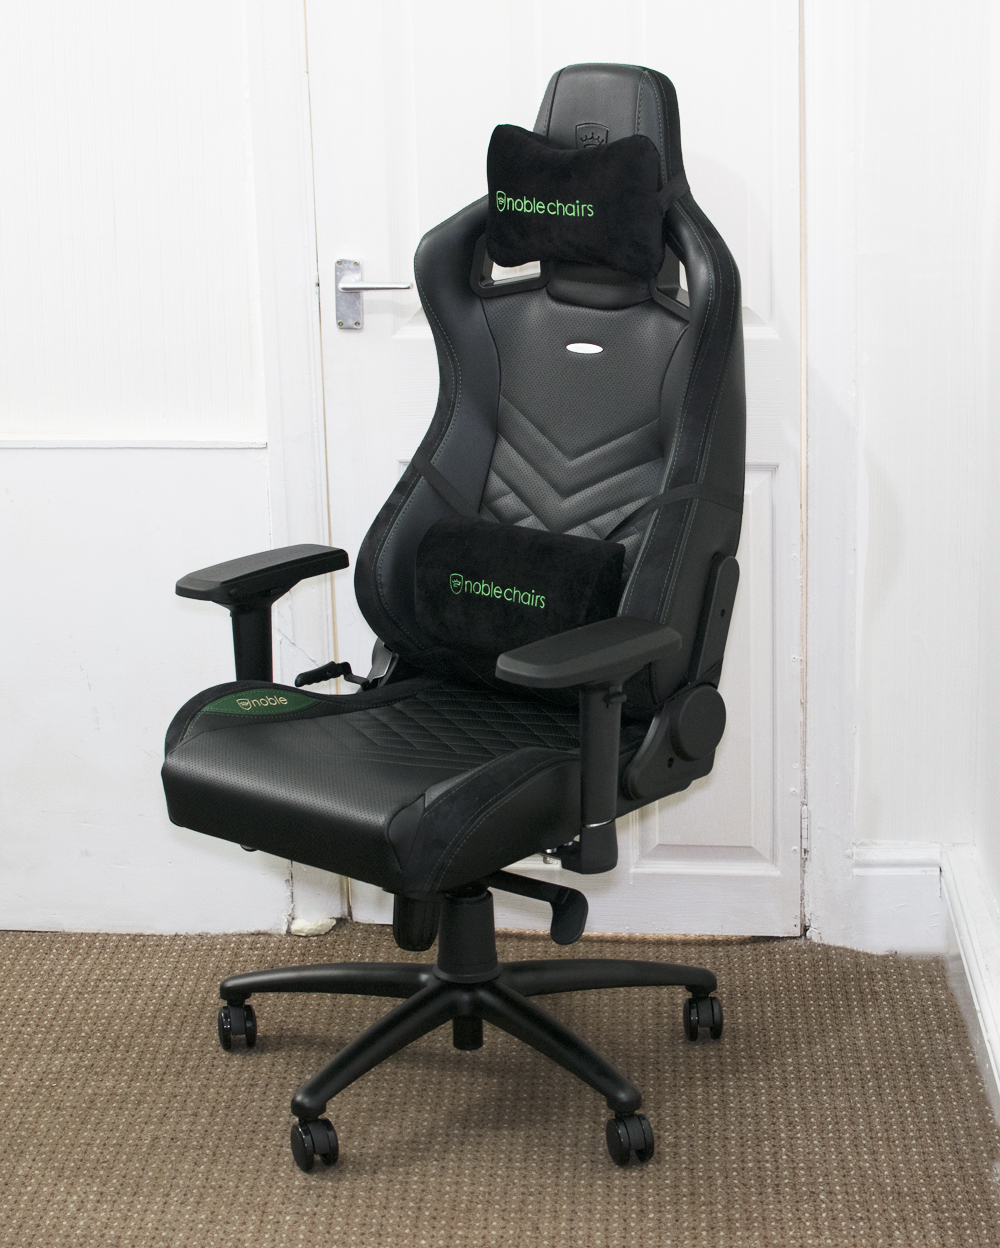 noblechairs EPIC Chair Review | Play3r | Page 3